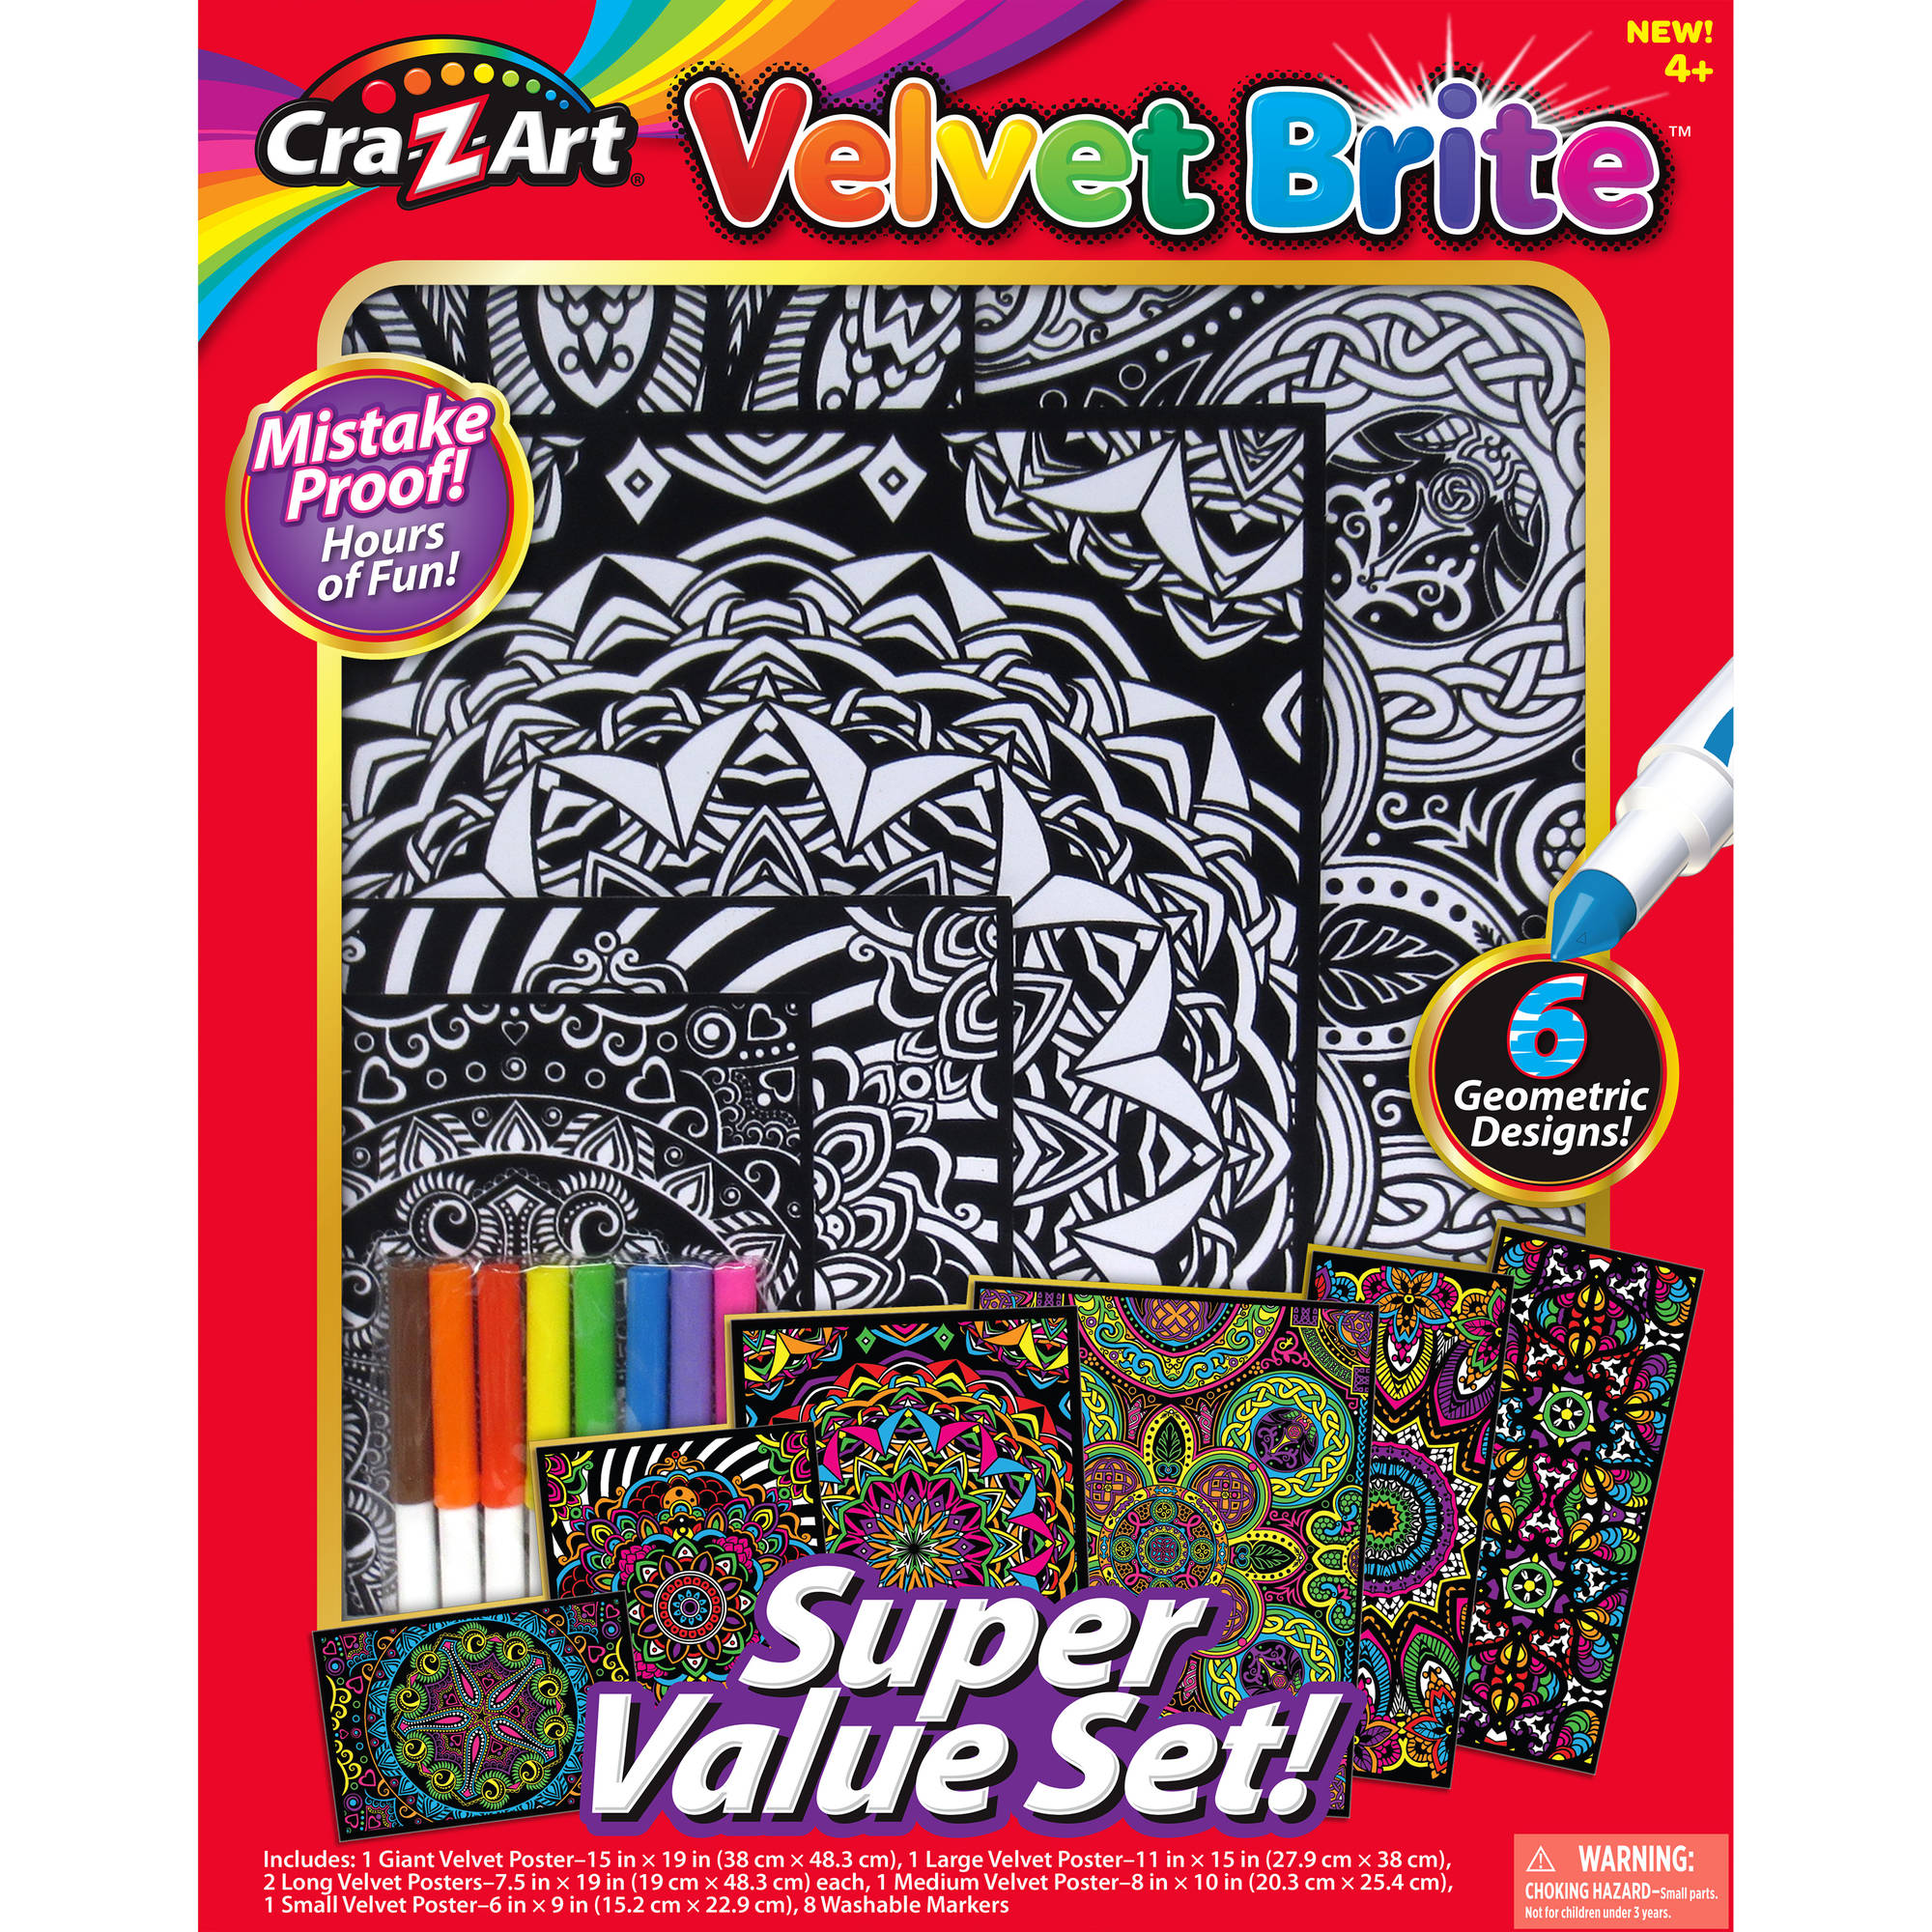 Cra-Z-Art VELVET BRITE SUPER VALUE SET - Walmart.com